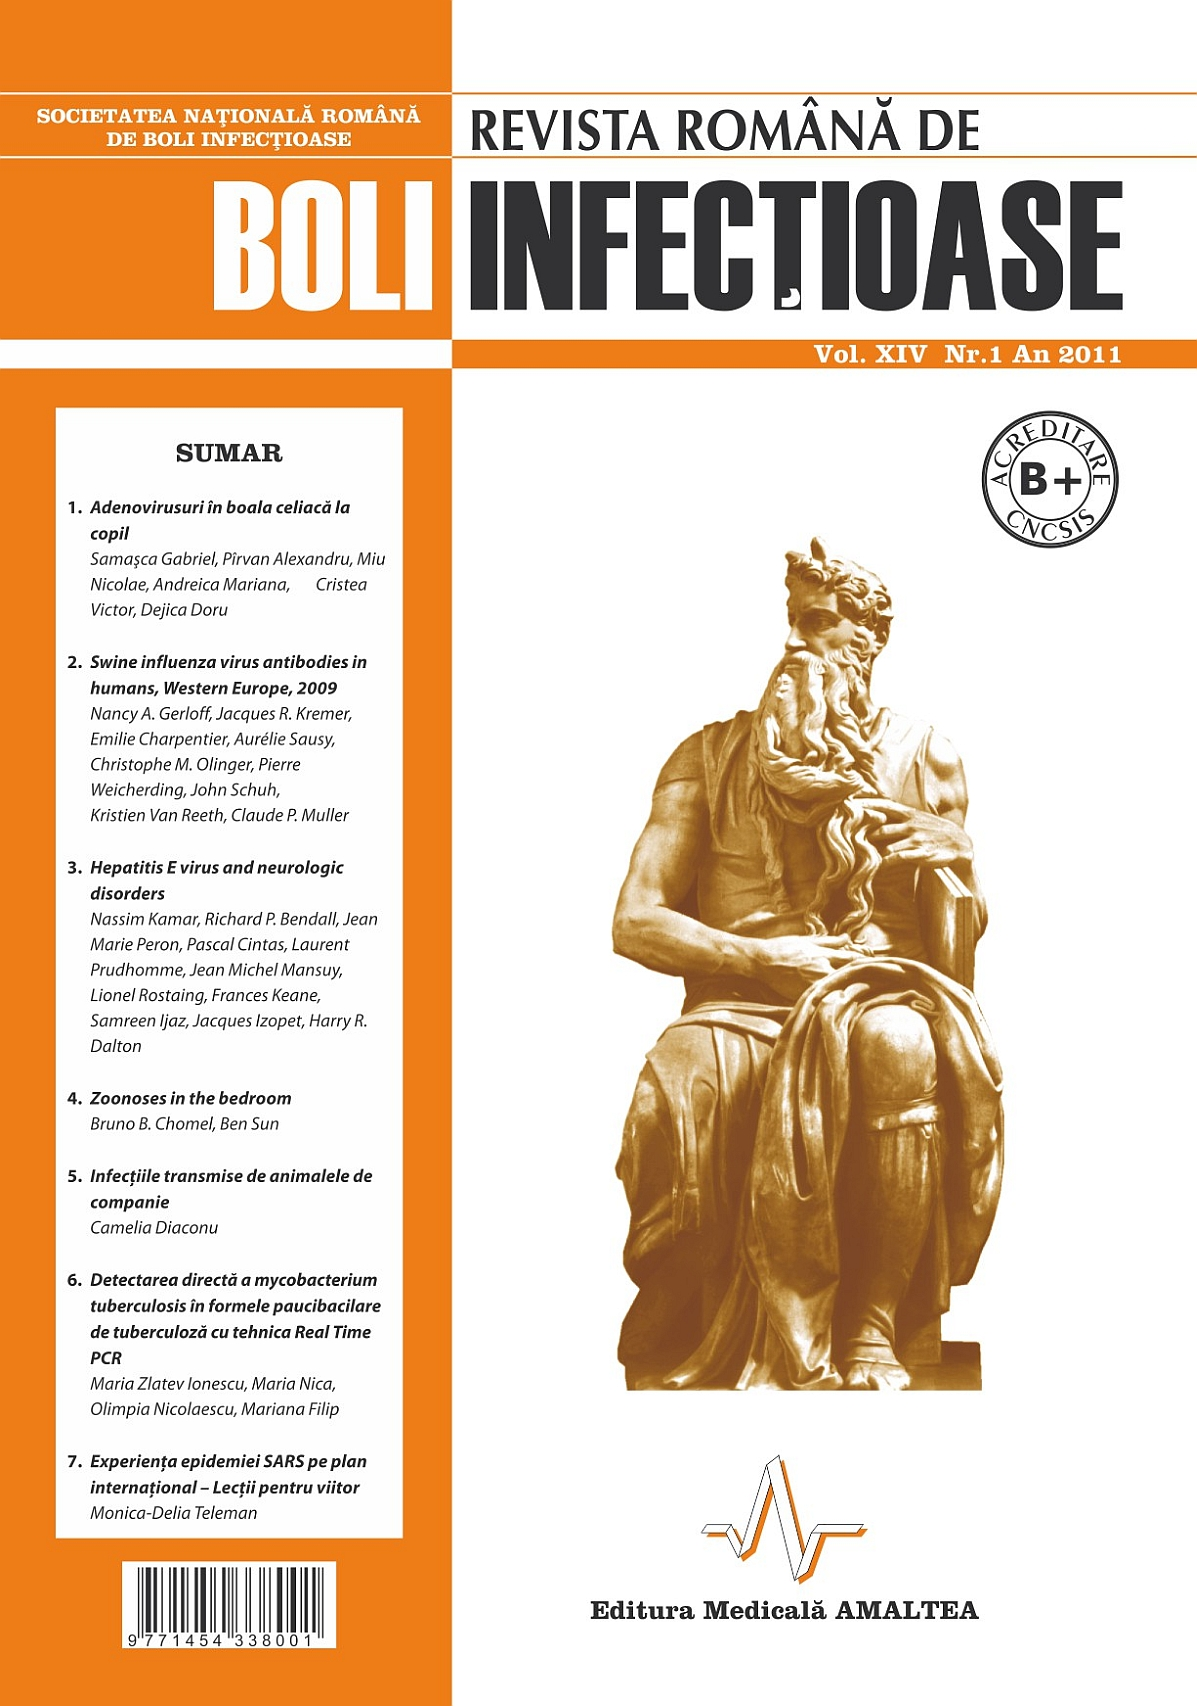 Revista Romana de Boli Infectioase | Vol. XIV, No. 1, 2011